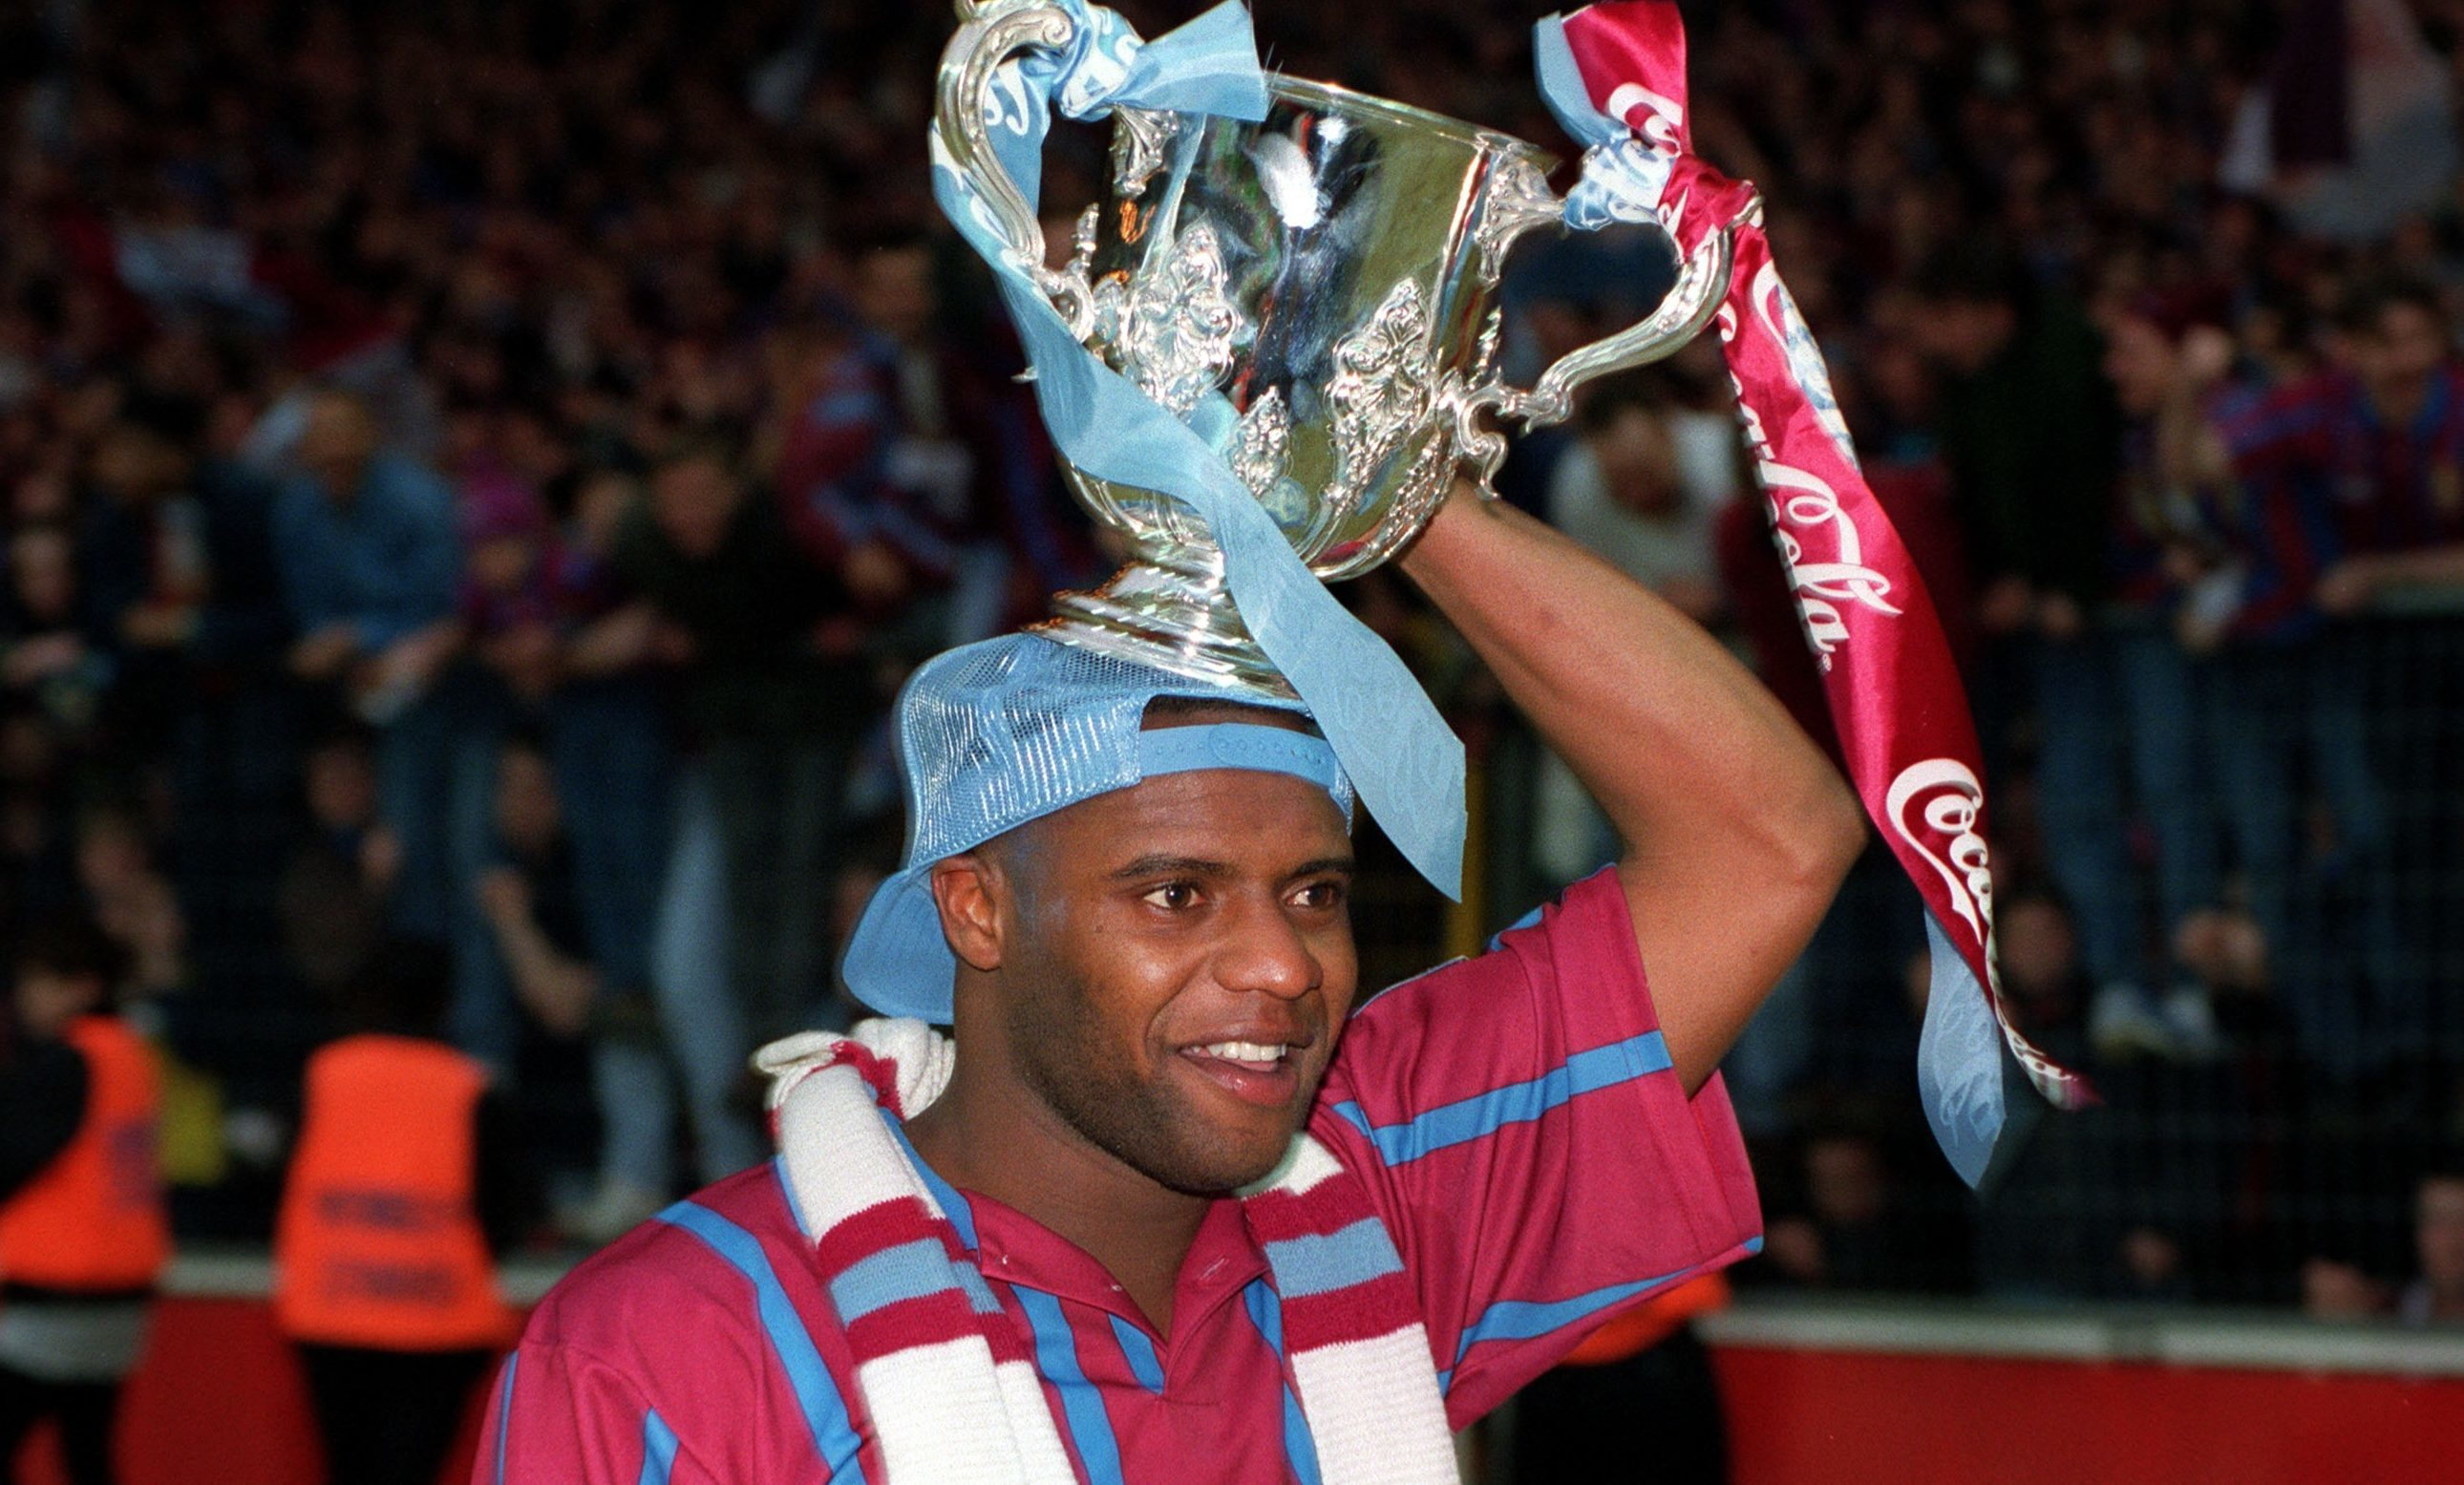 Dalian Atkinson died after being Tasered by police on Monday morning